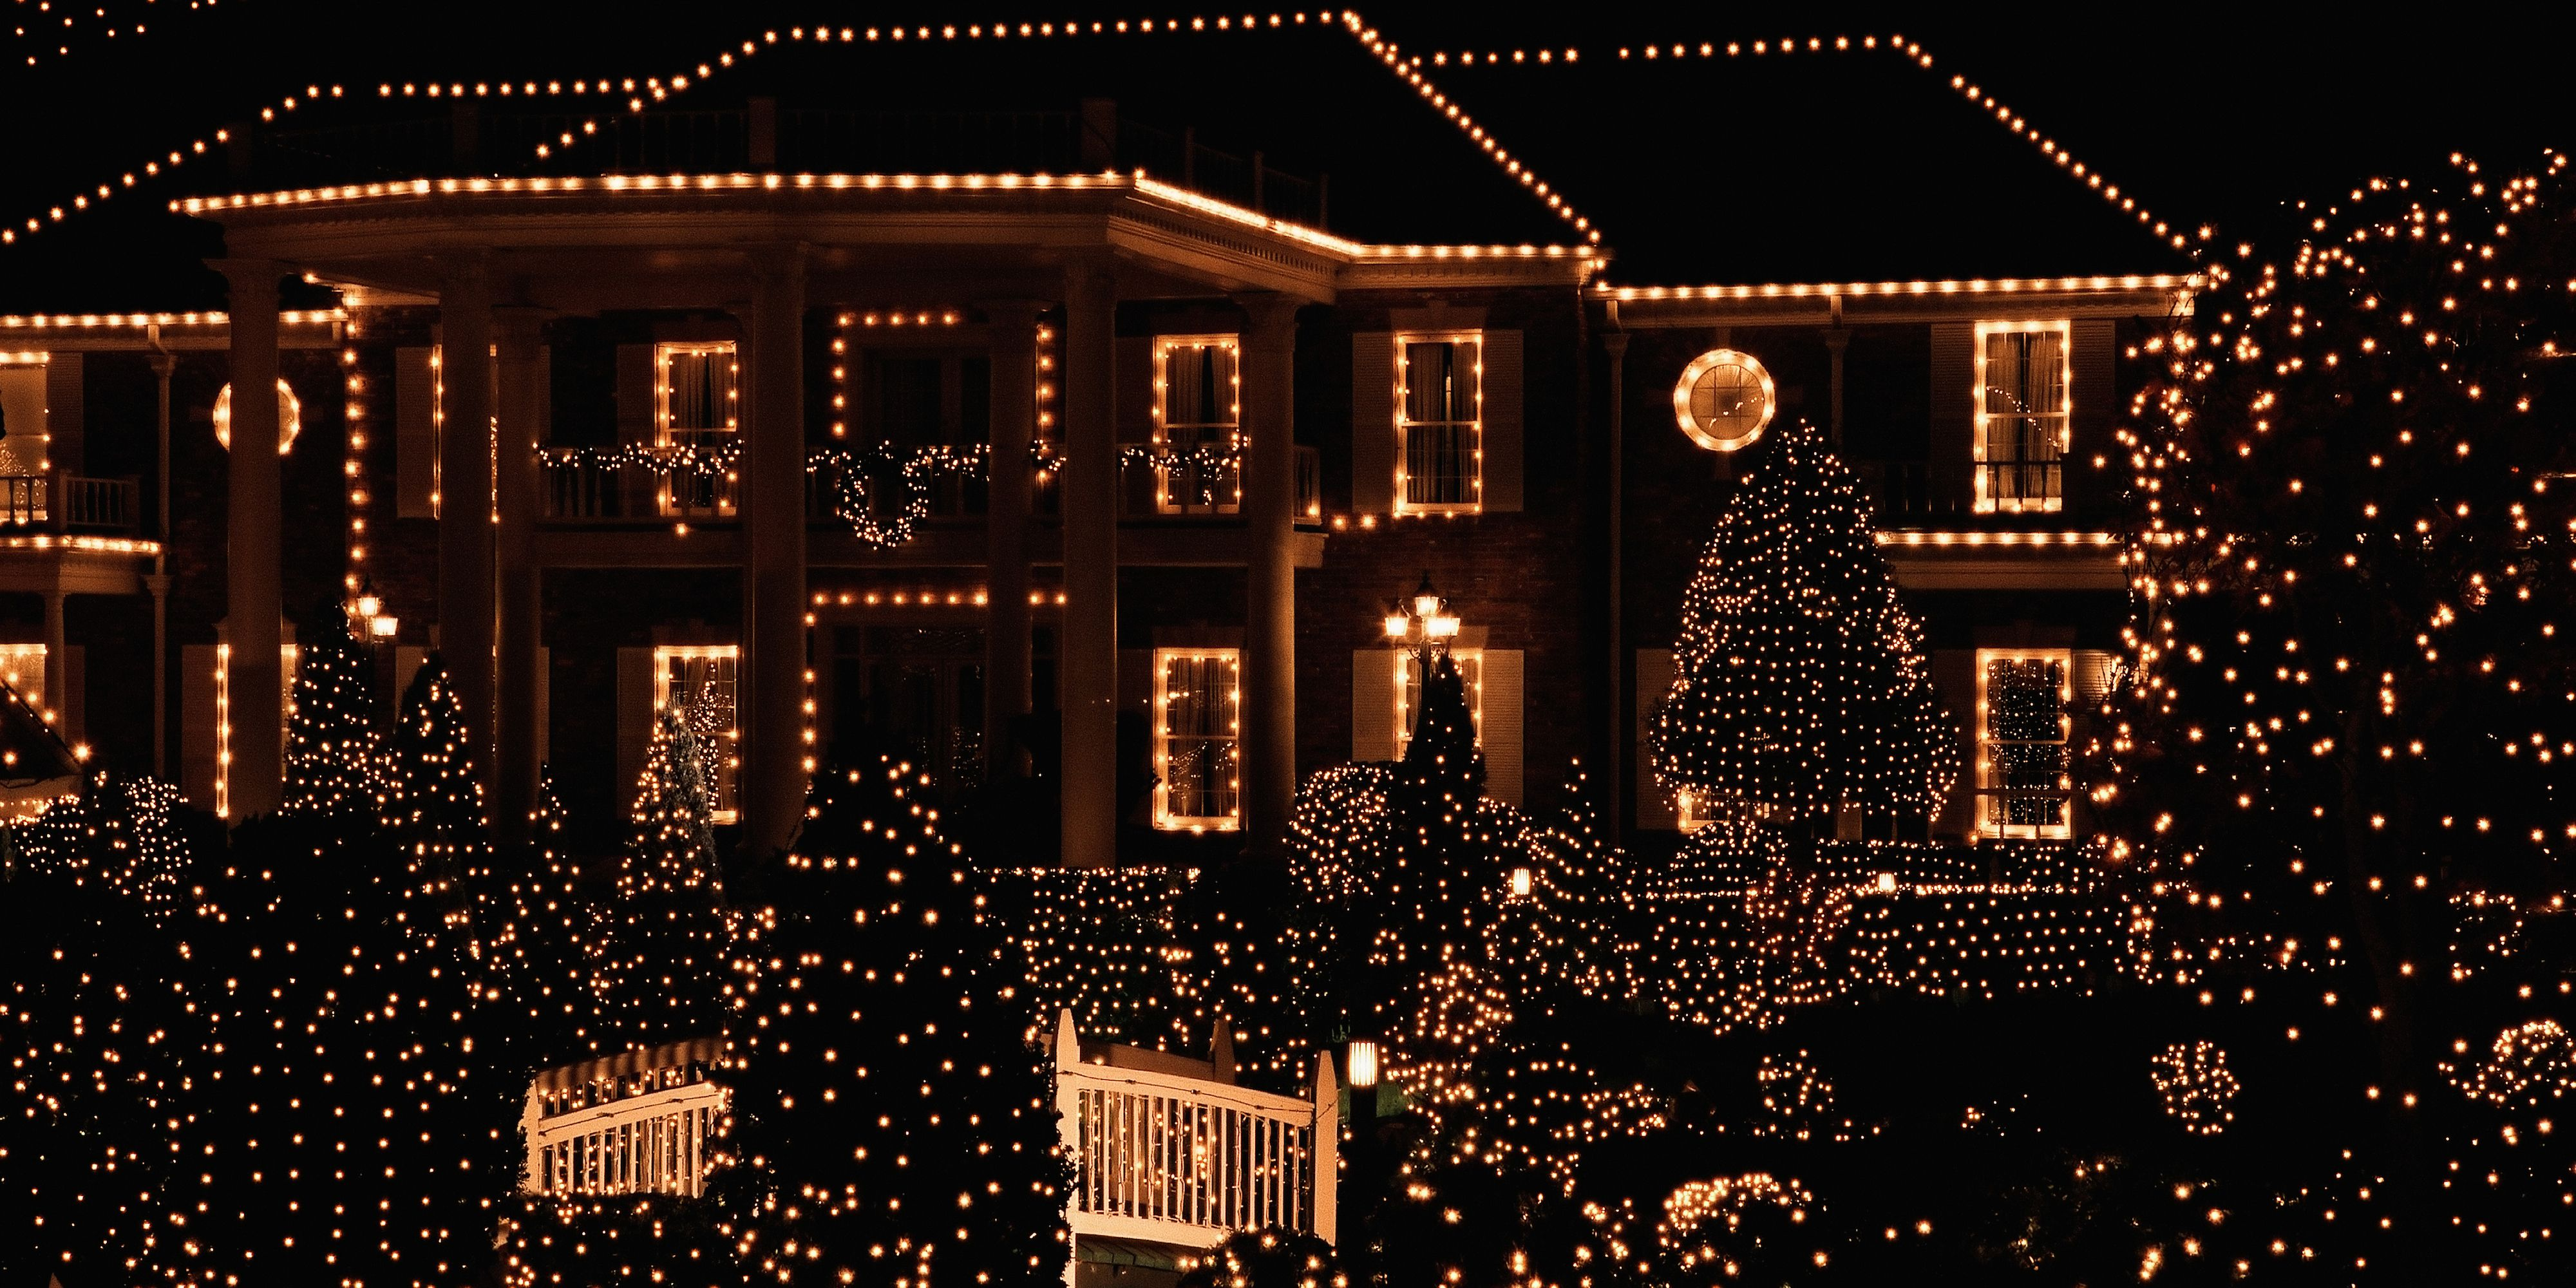 stairs light restaurant meal home lighting decoration. 20 Outdoor Christmas Light Decoration Ideas - Outside Lights Display Pictures Stairs Restaurant Meal Home Lighting O